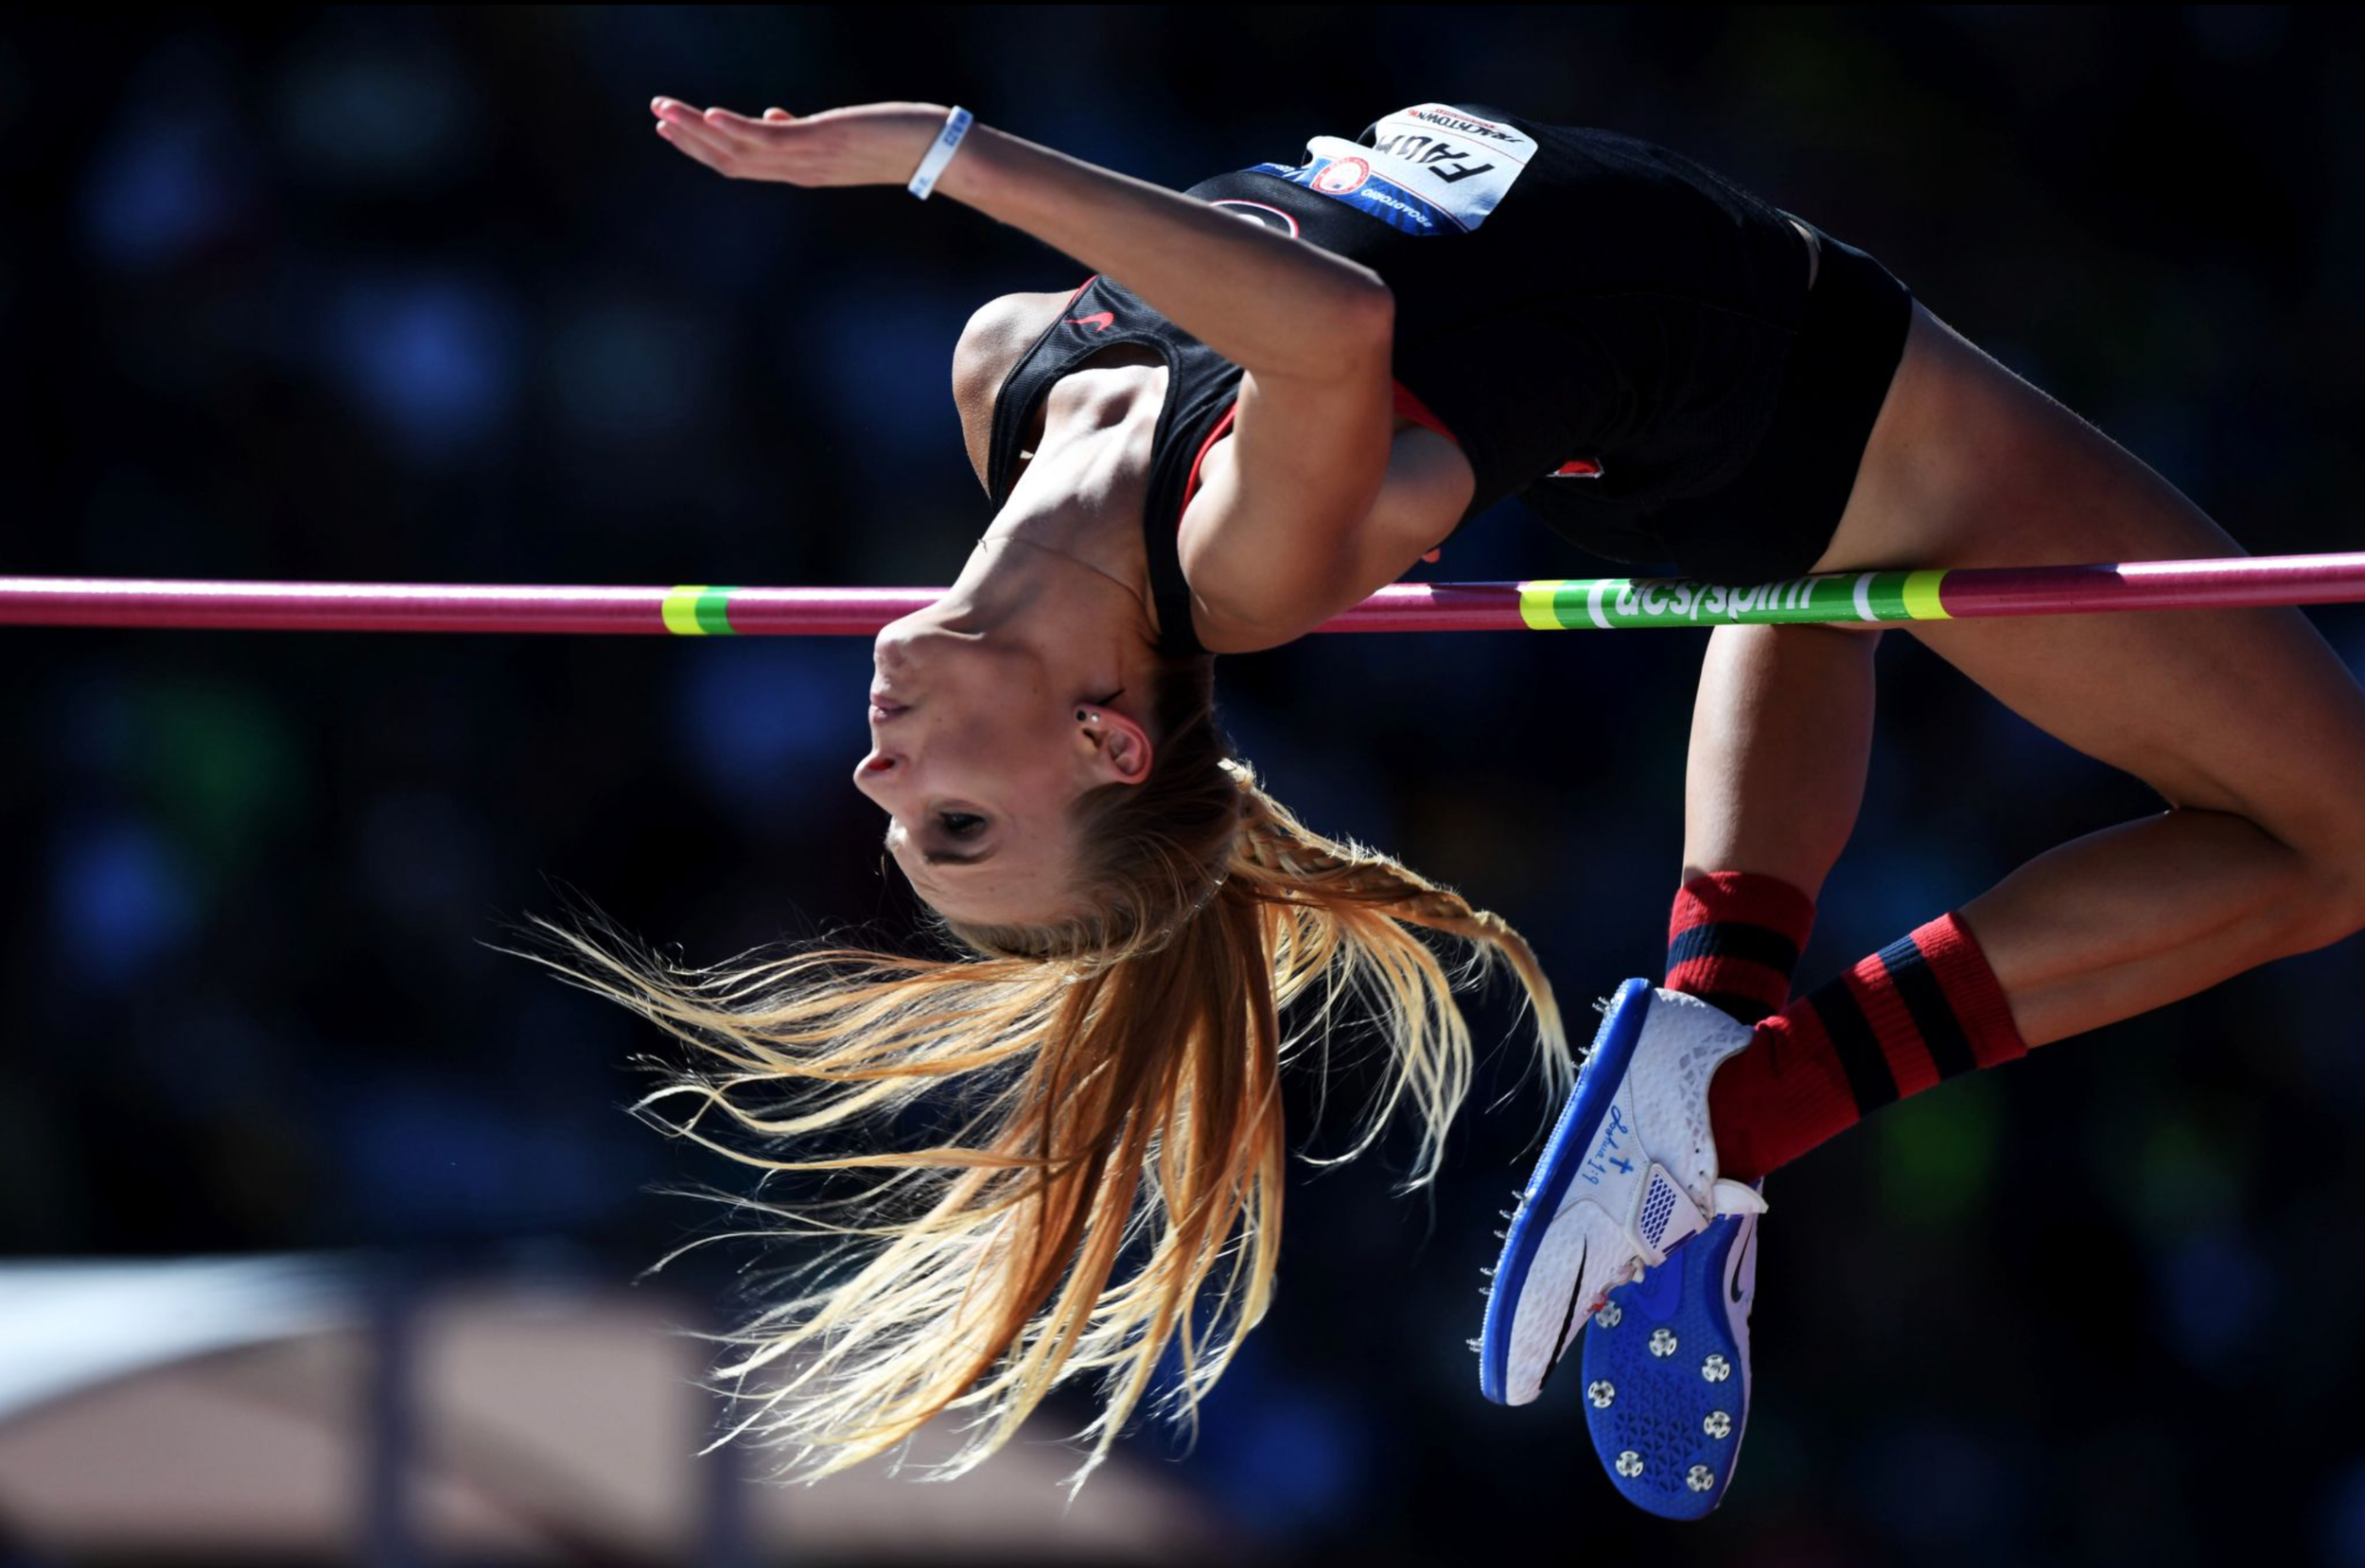 Madeline Fagan clears the women's high jump competition. She finished seventh overall in the event.